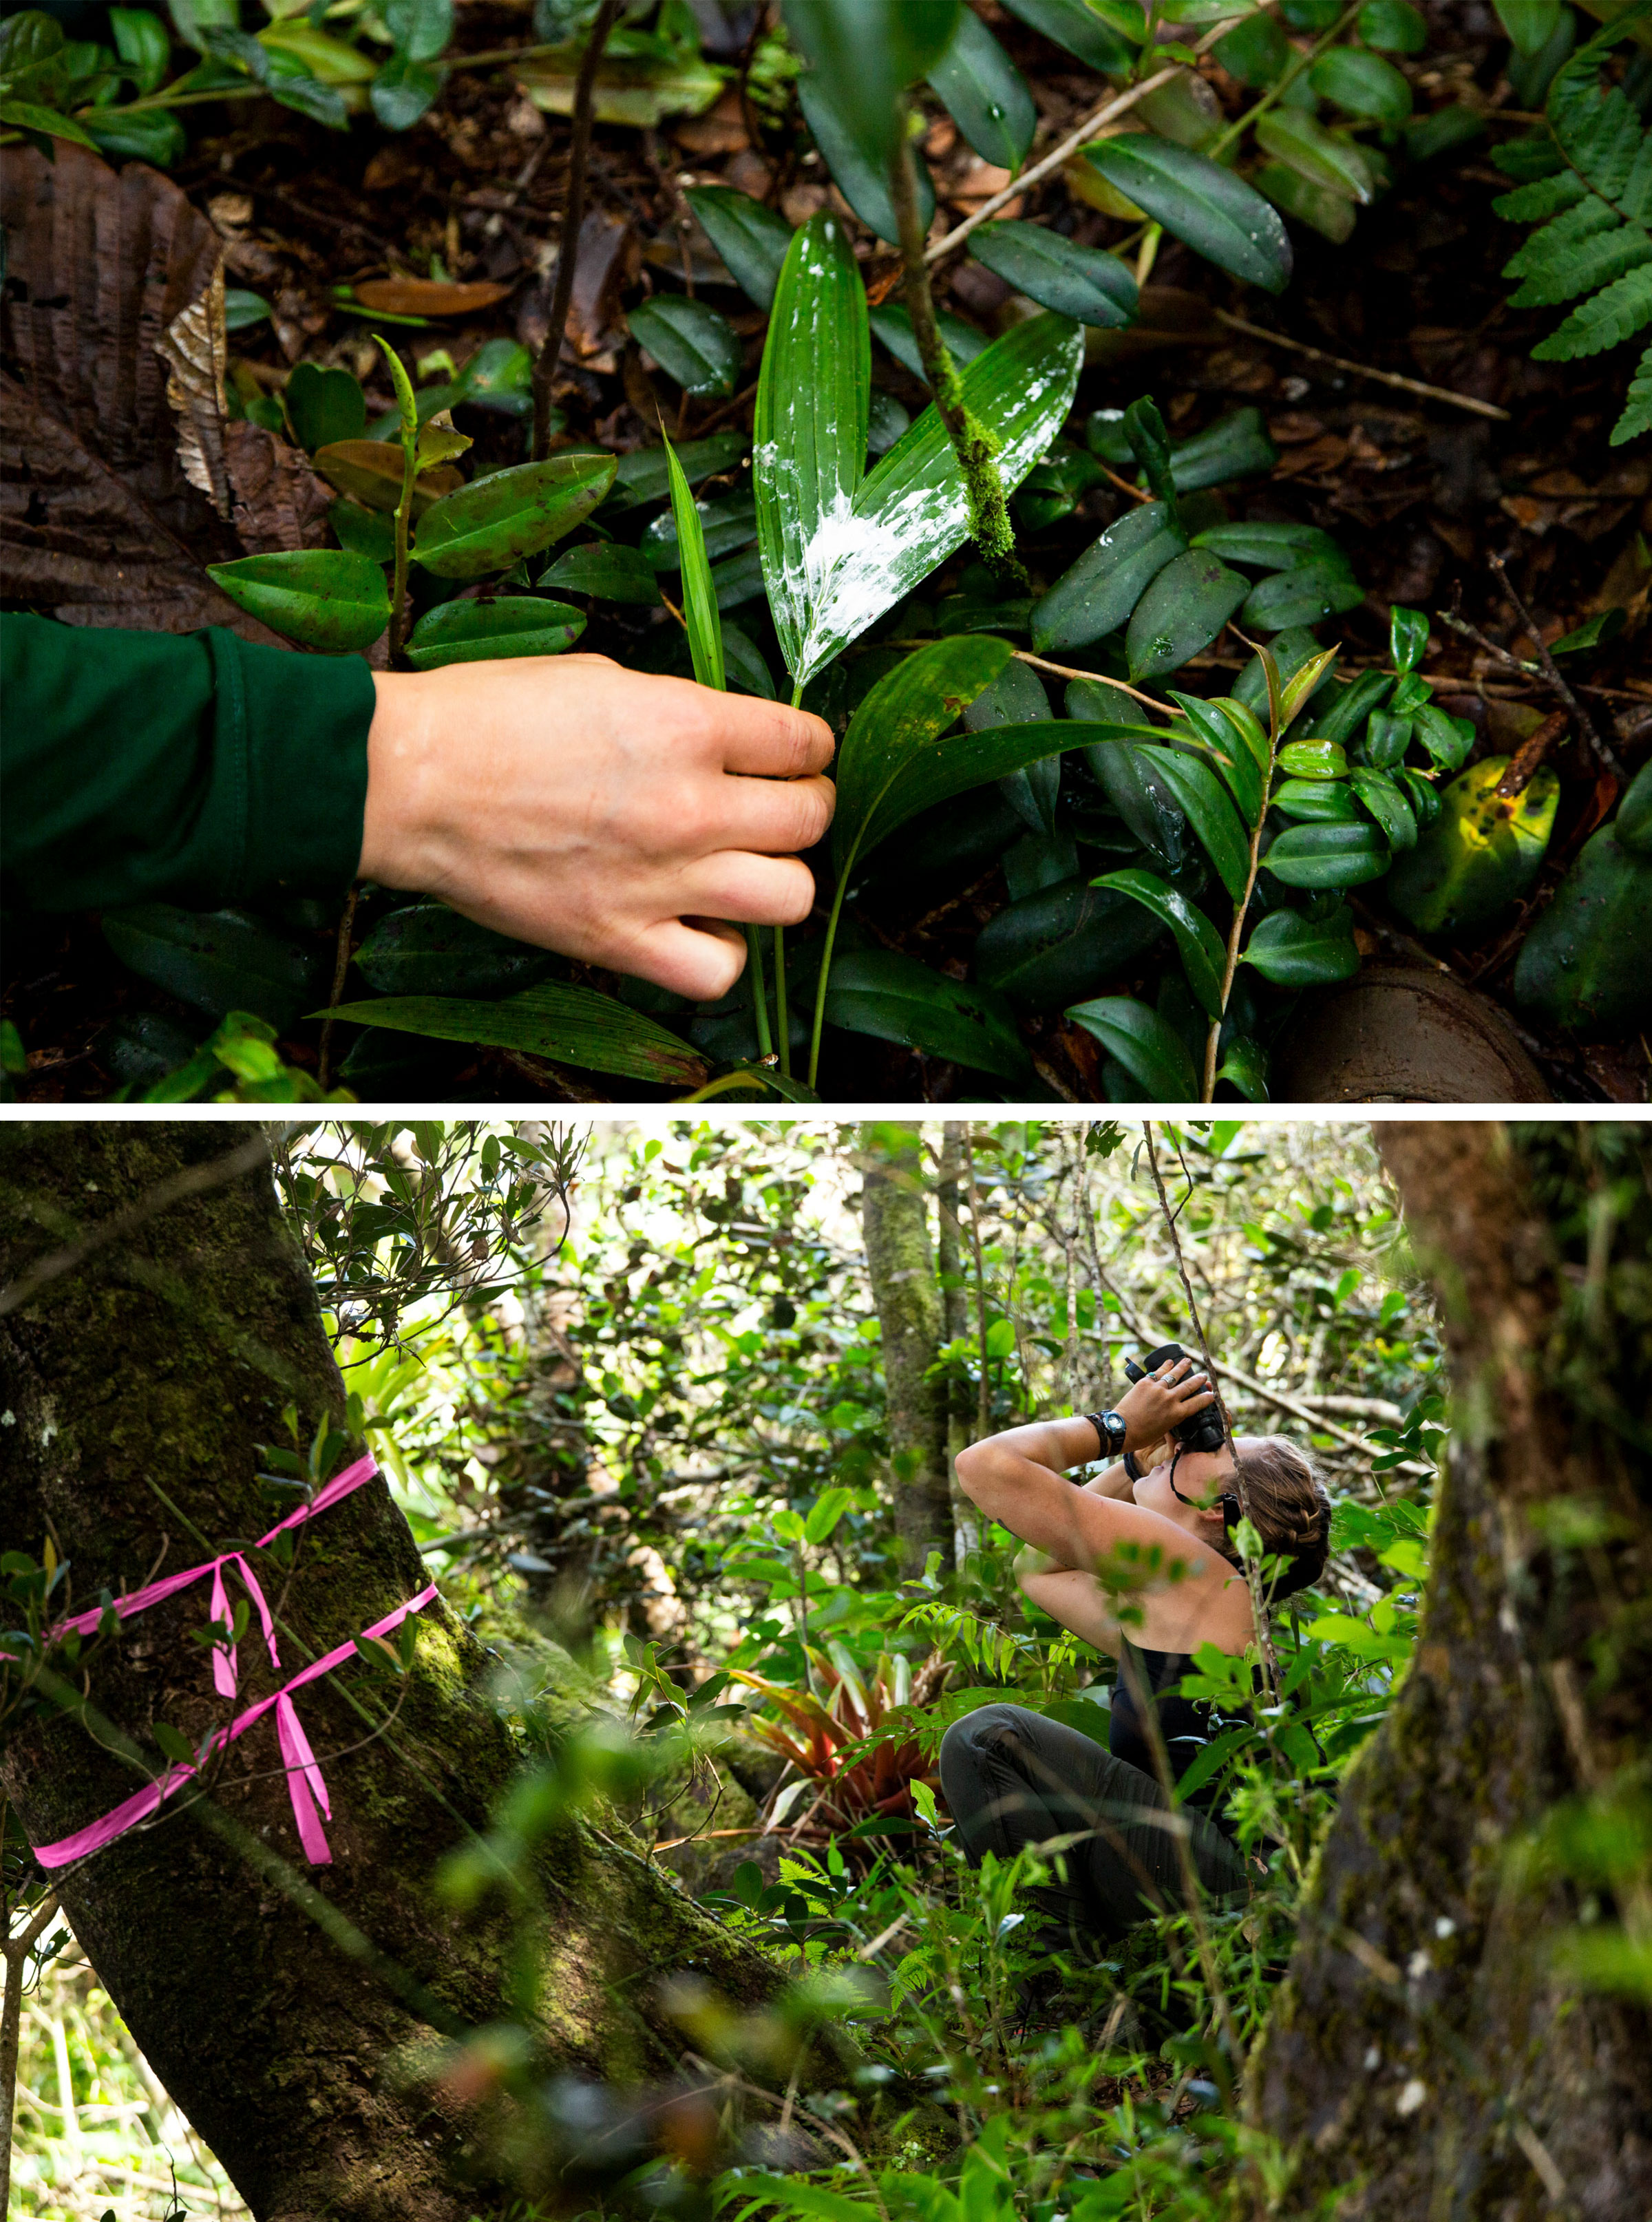 Whitewash from a hawk near a nesting site at Toro Negro Forest (top). Michaela Gustafson observes the nest (bottom). Photos: Erika P. Rodriguez